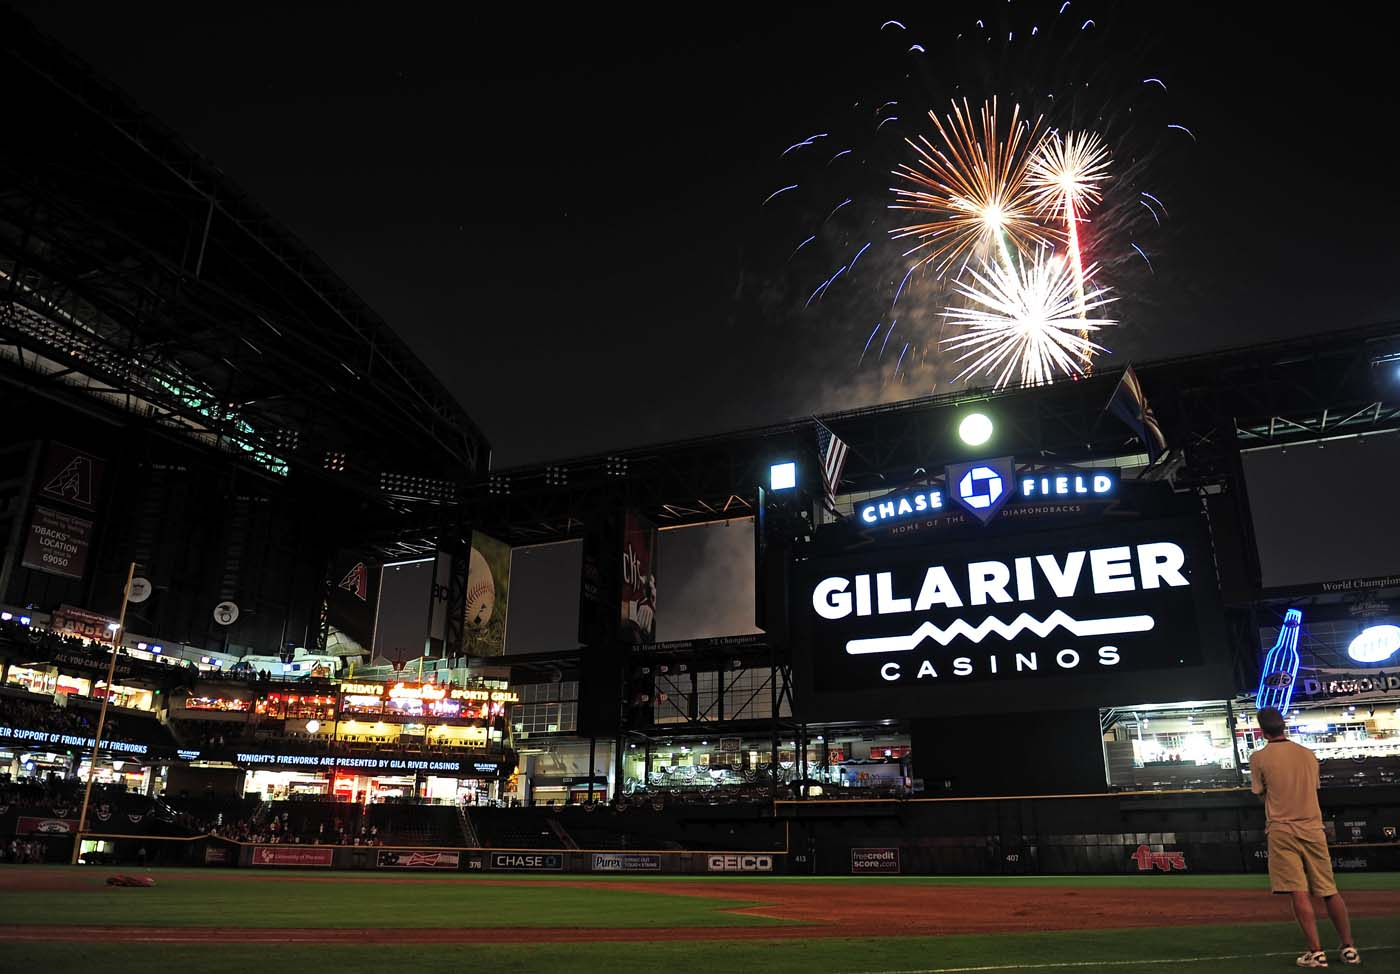 PHOENIX, AZ - JULY 04: Fans sit on the field and watch a fireworks show after the game between Arizona Diamondbacks and San Diego Padres at Chase Field. (Jennifer Stewart/US Presswire)